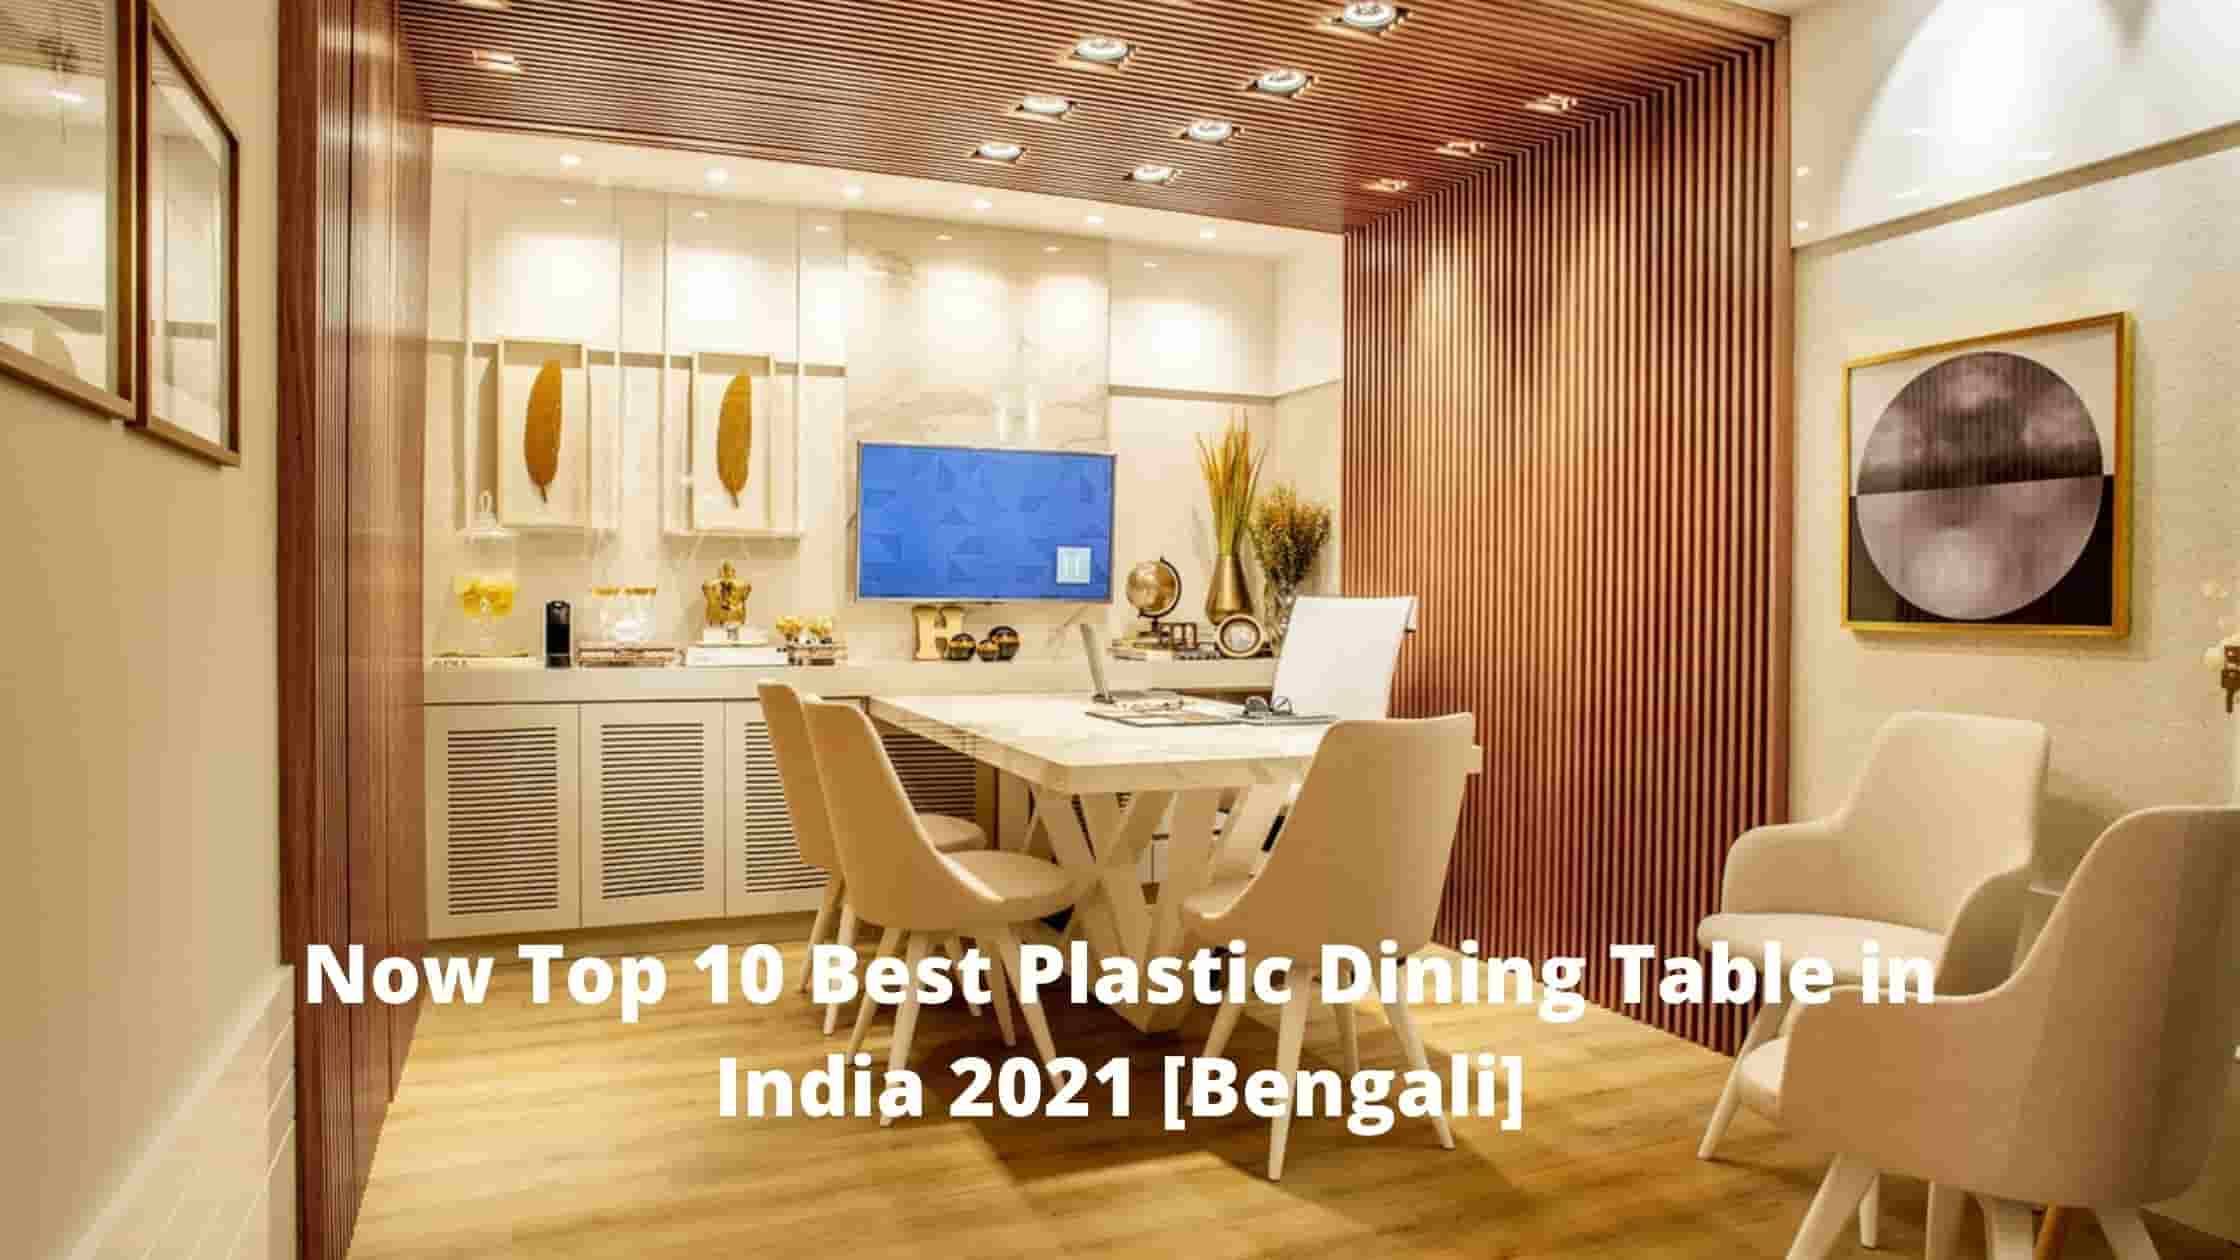 Now Top 10 Best Plastic Dining Table in India 2021 [Bengali]